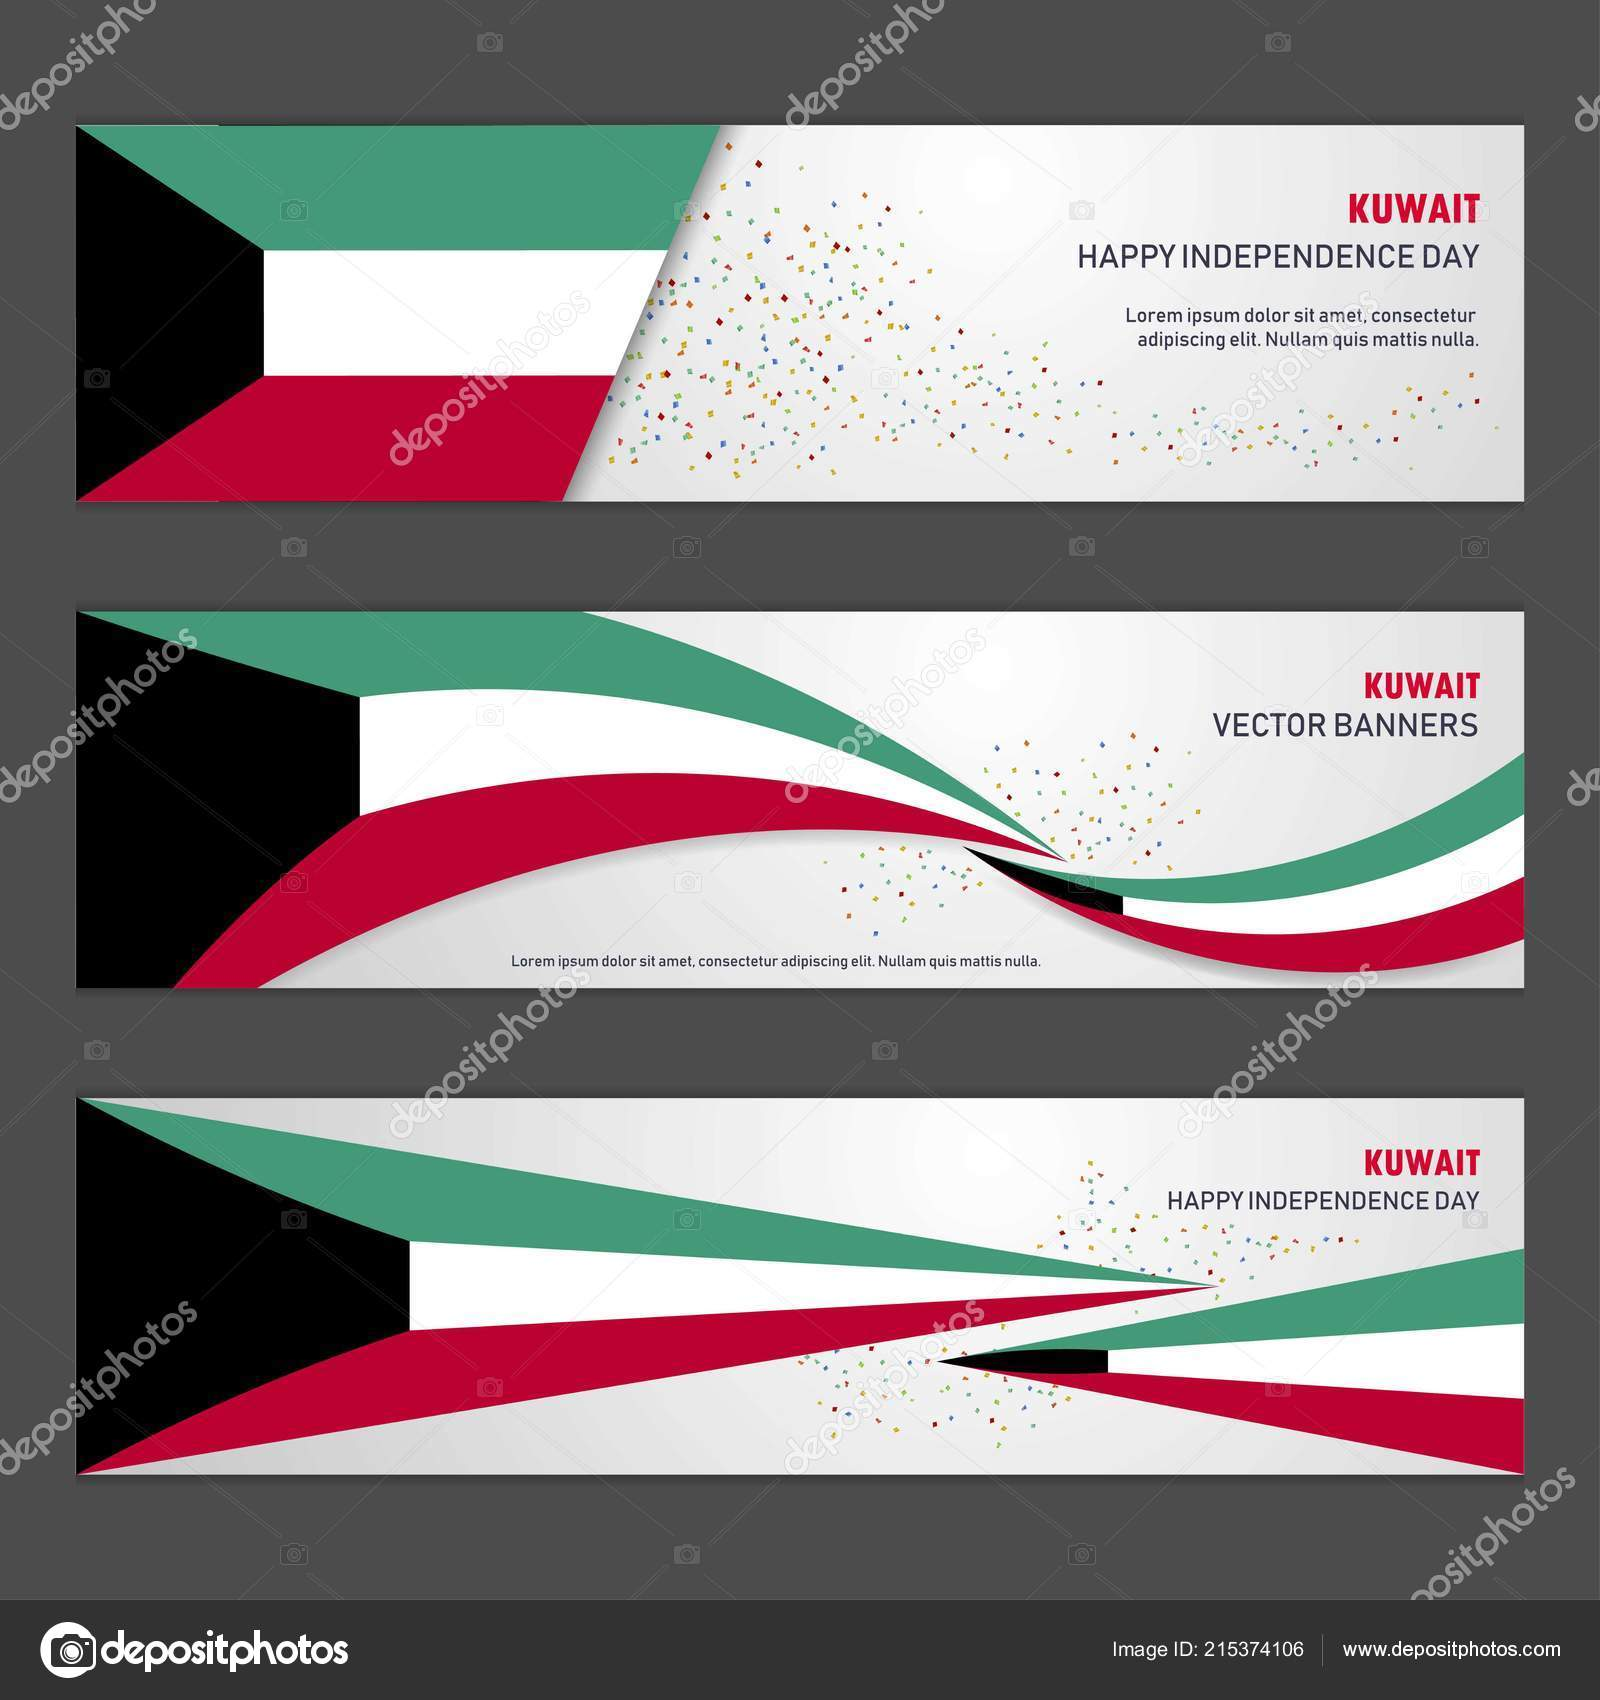 Kuwait Independence Day Abstract Background Design Banner Flyer